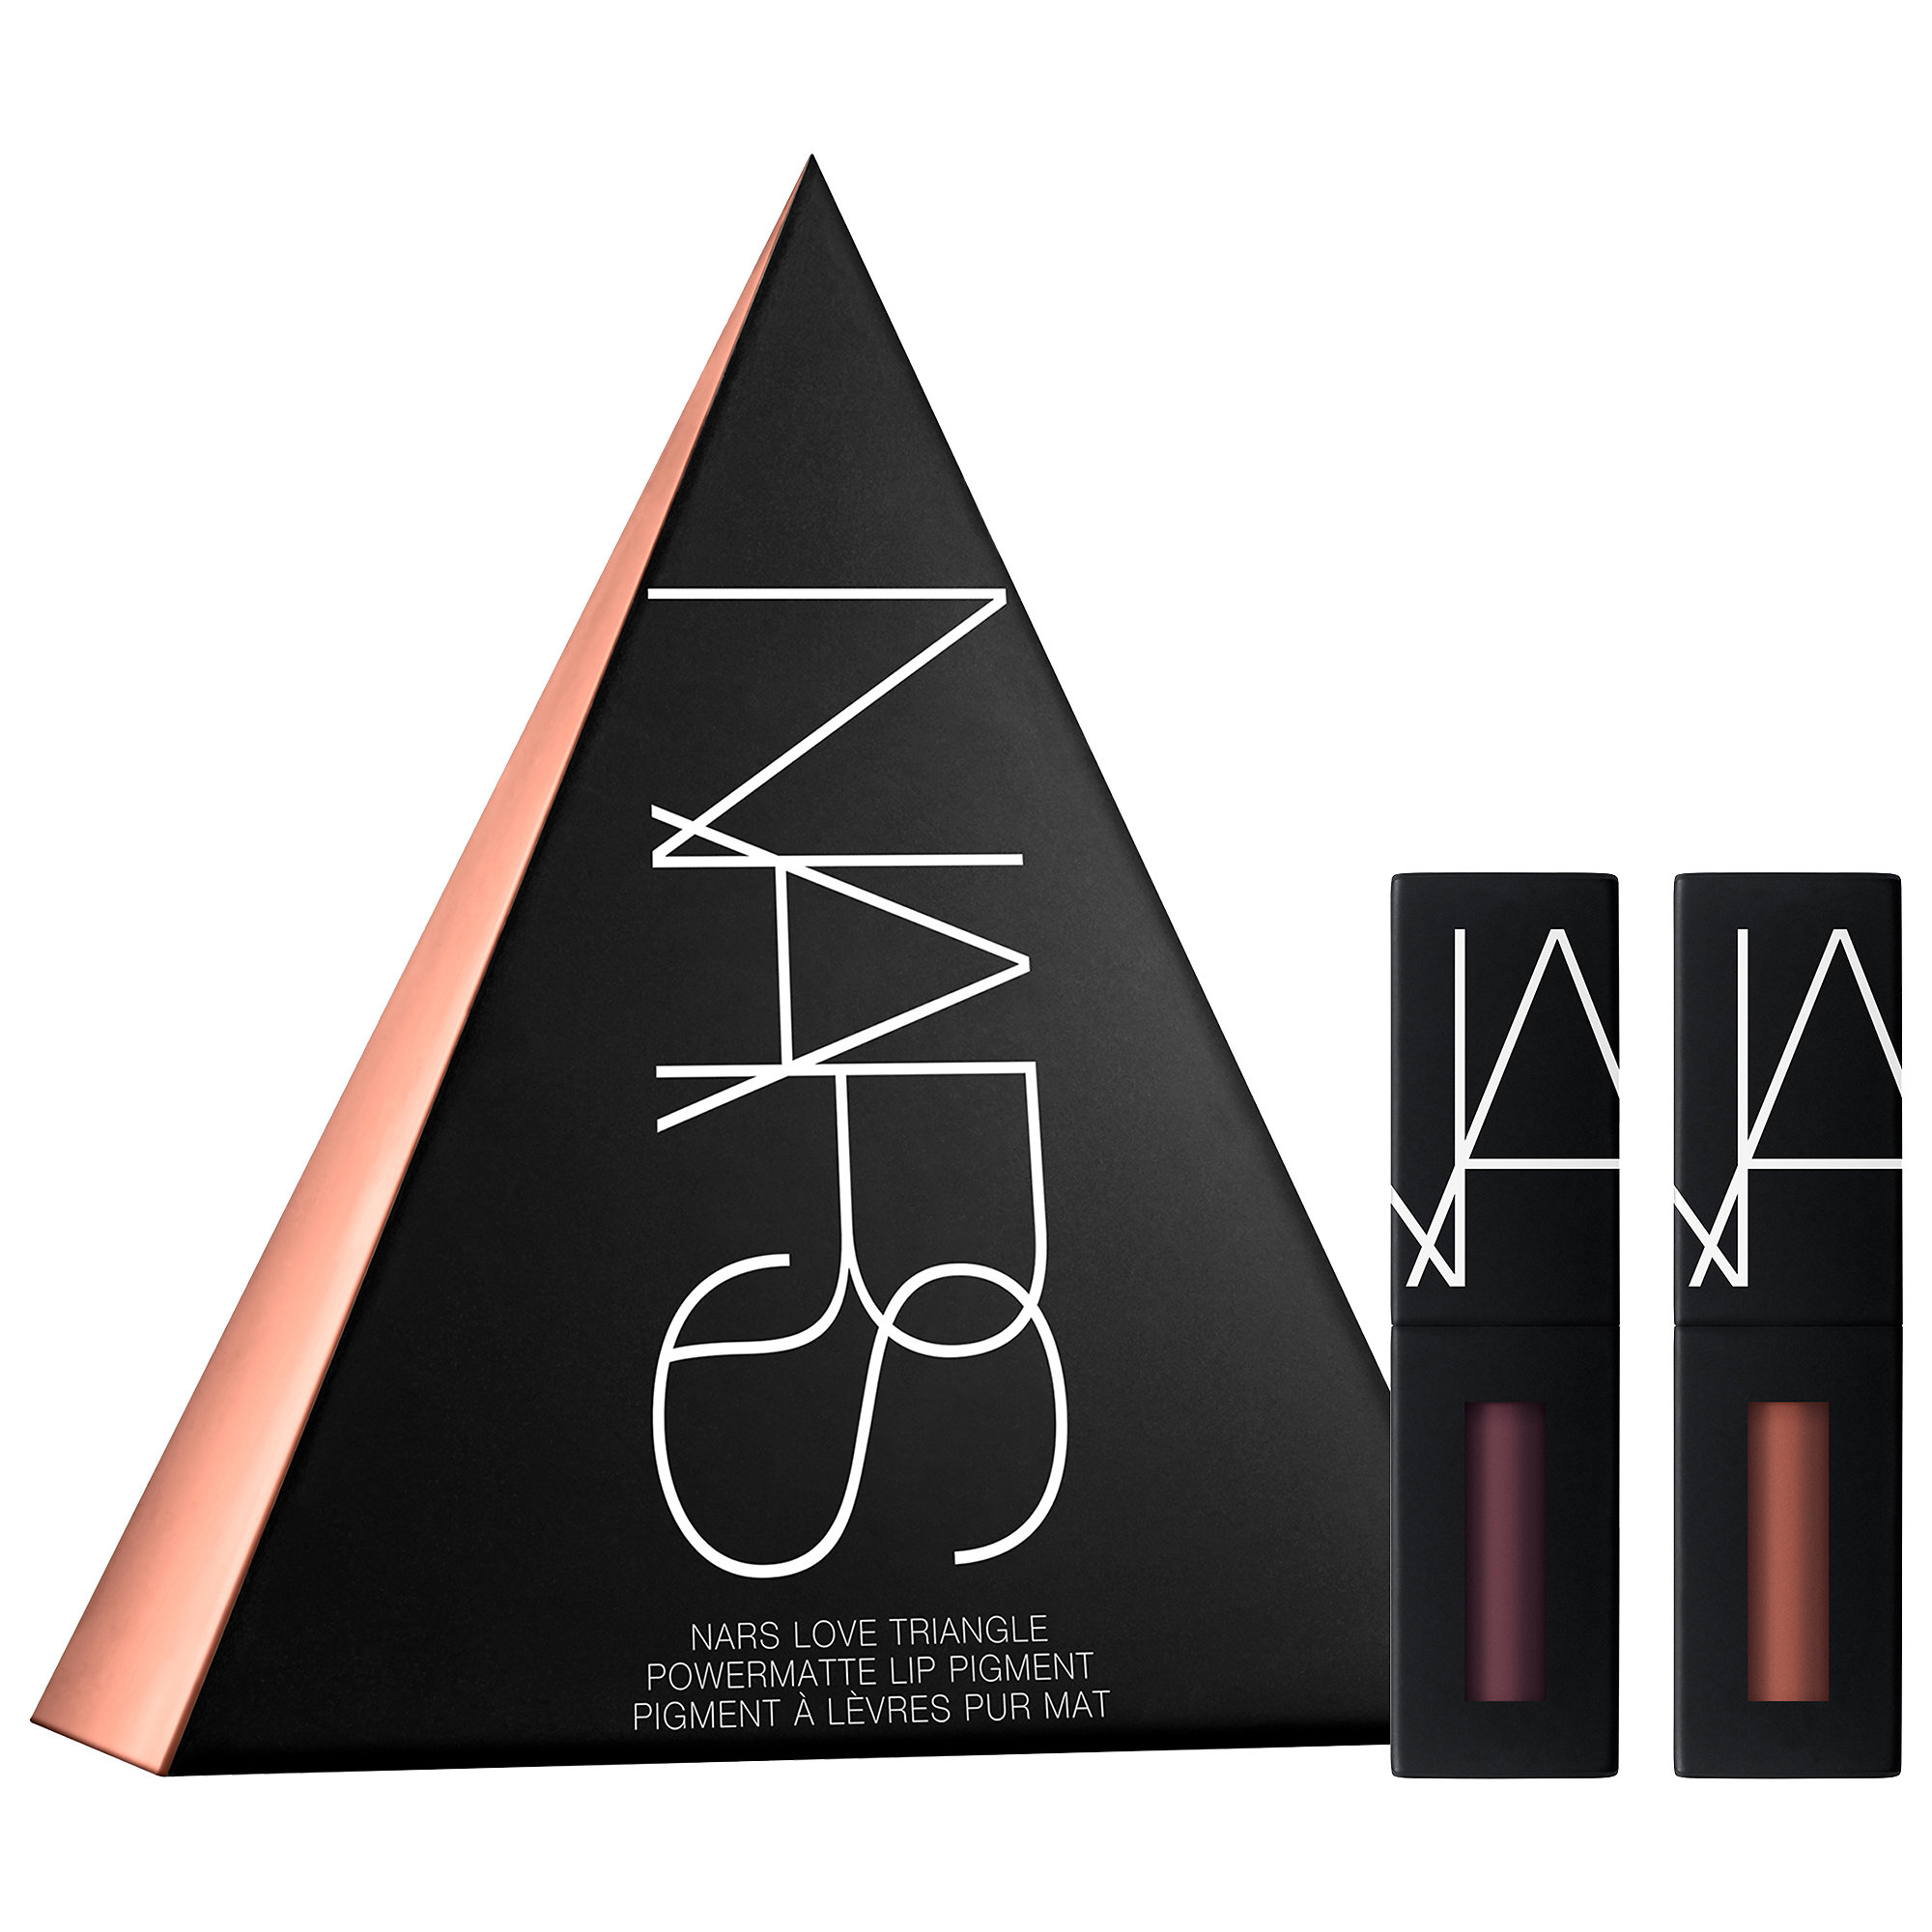 12 fabulous last-minute beauty gifts at Sephora inside JCPenney | Nars Lip Duo | Sponsor